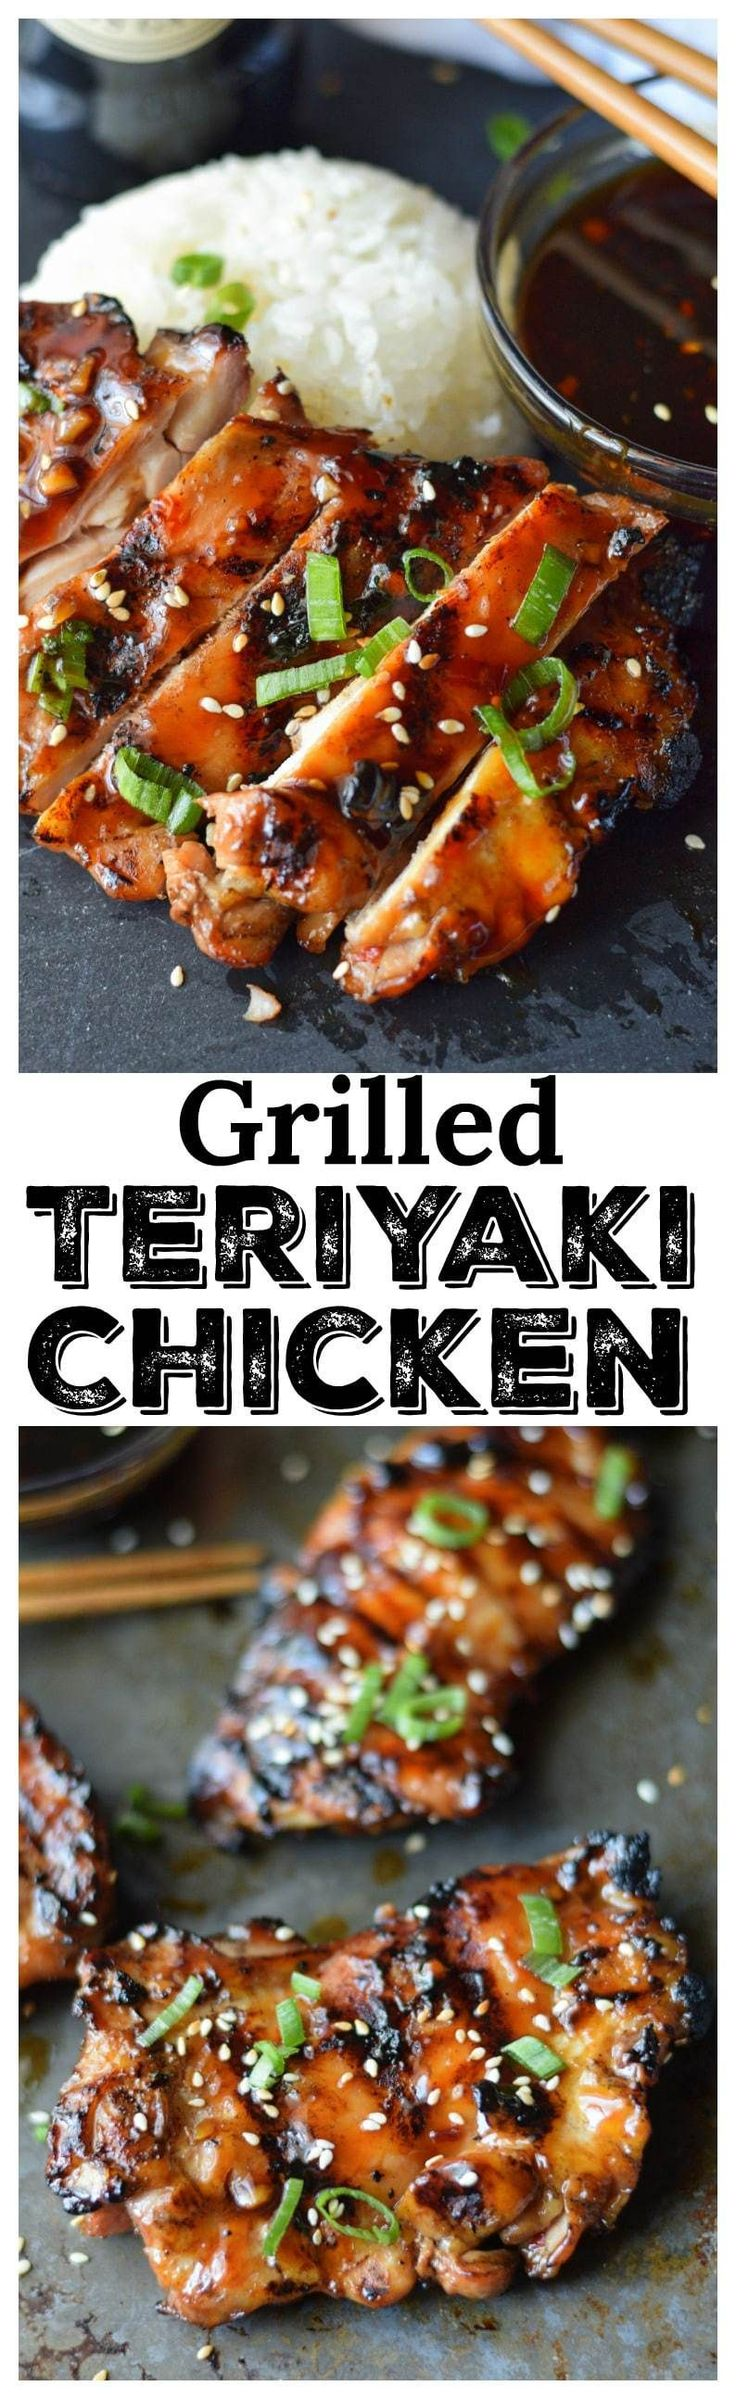 This Grilled Teriyaki Chicken recipe is amazing! Melt in your mouth chicken, smothered in sticky teriyaki sauce.